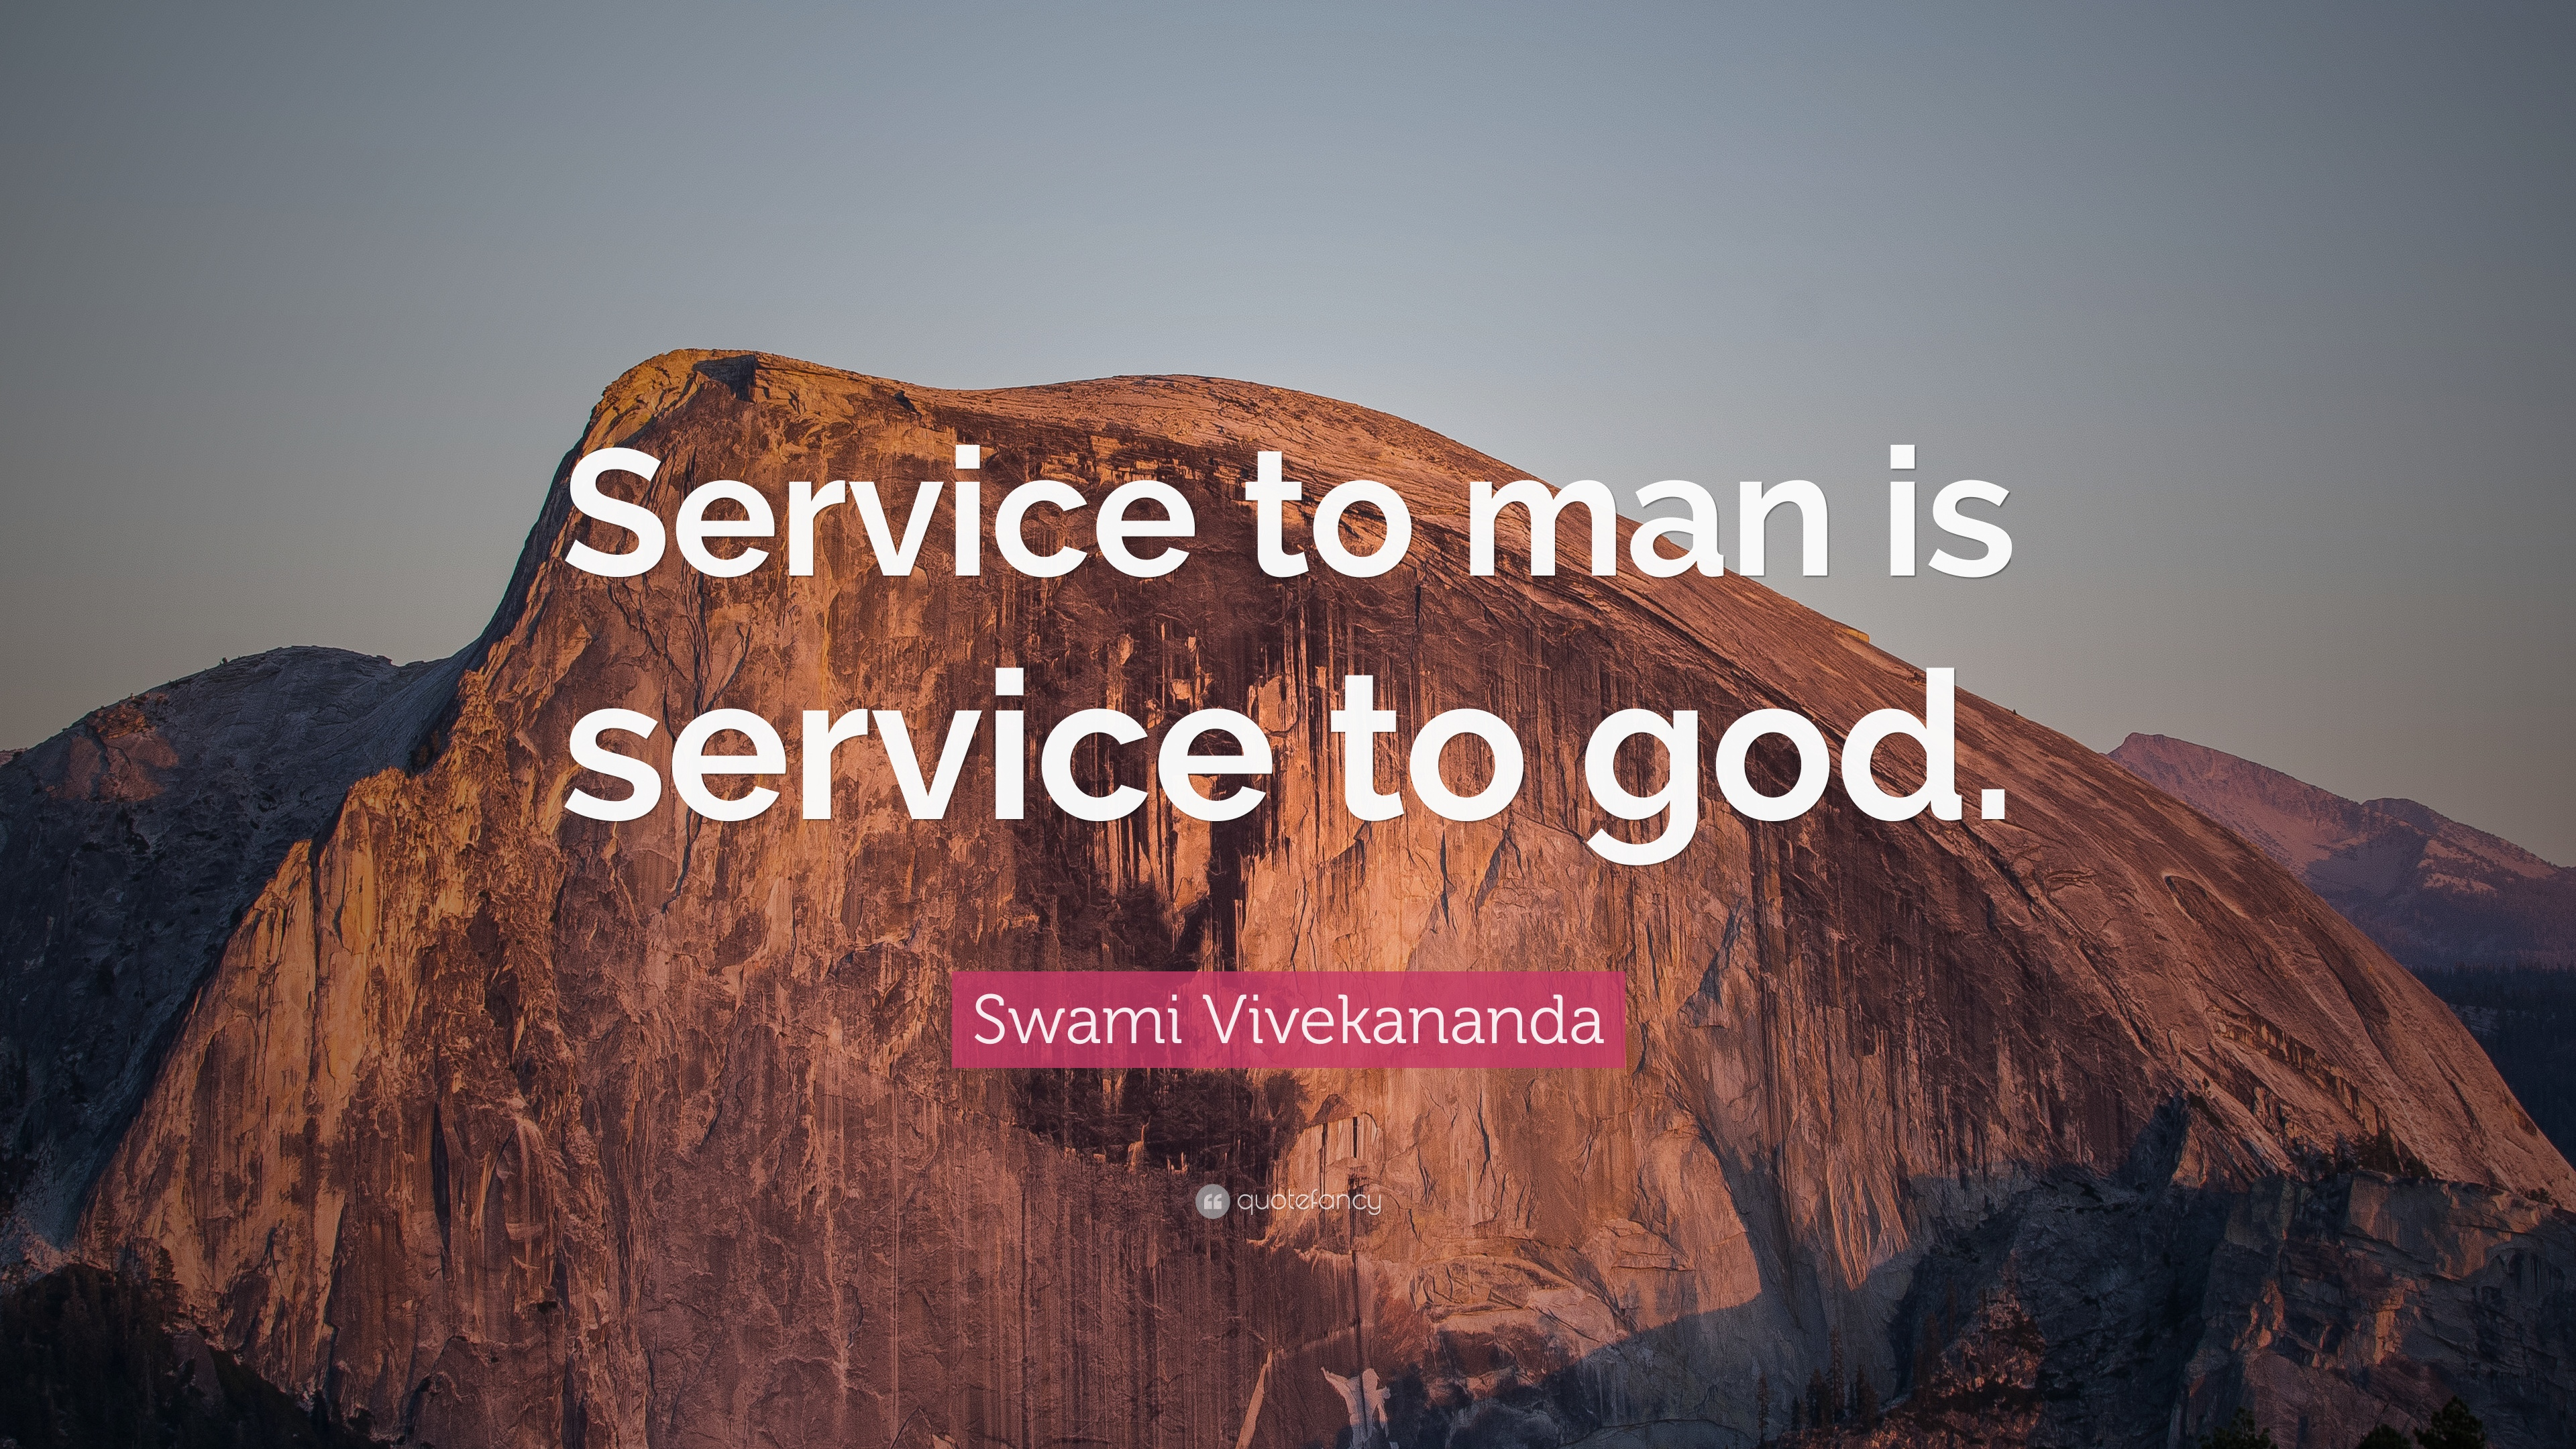 Service to man is service to god